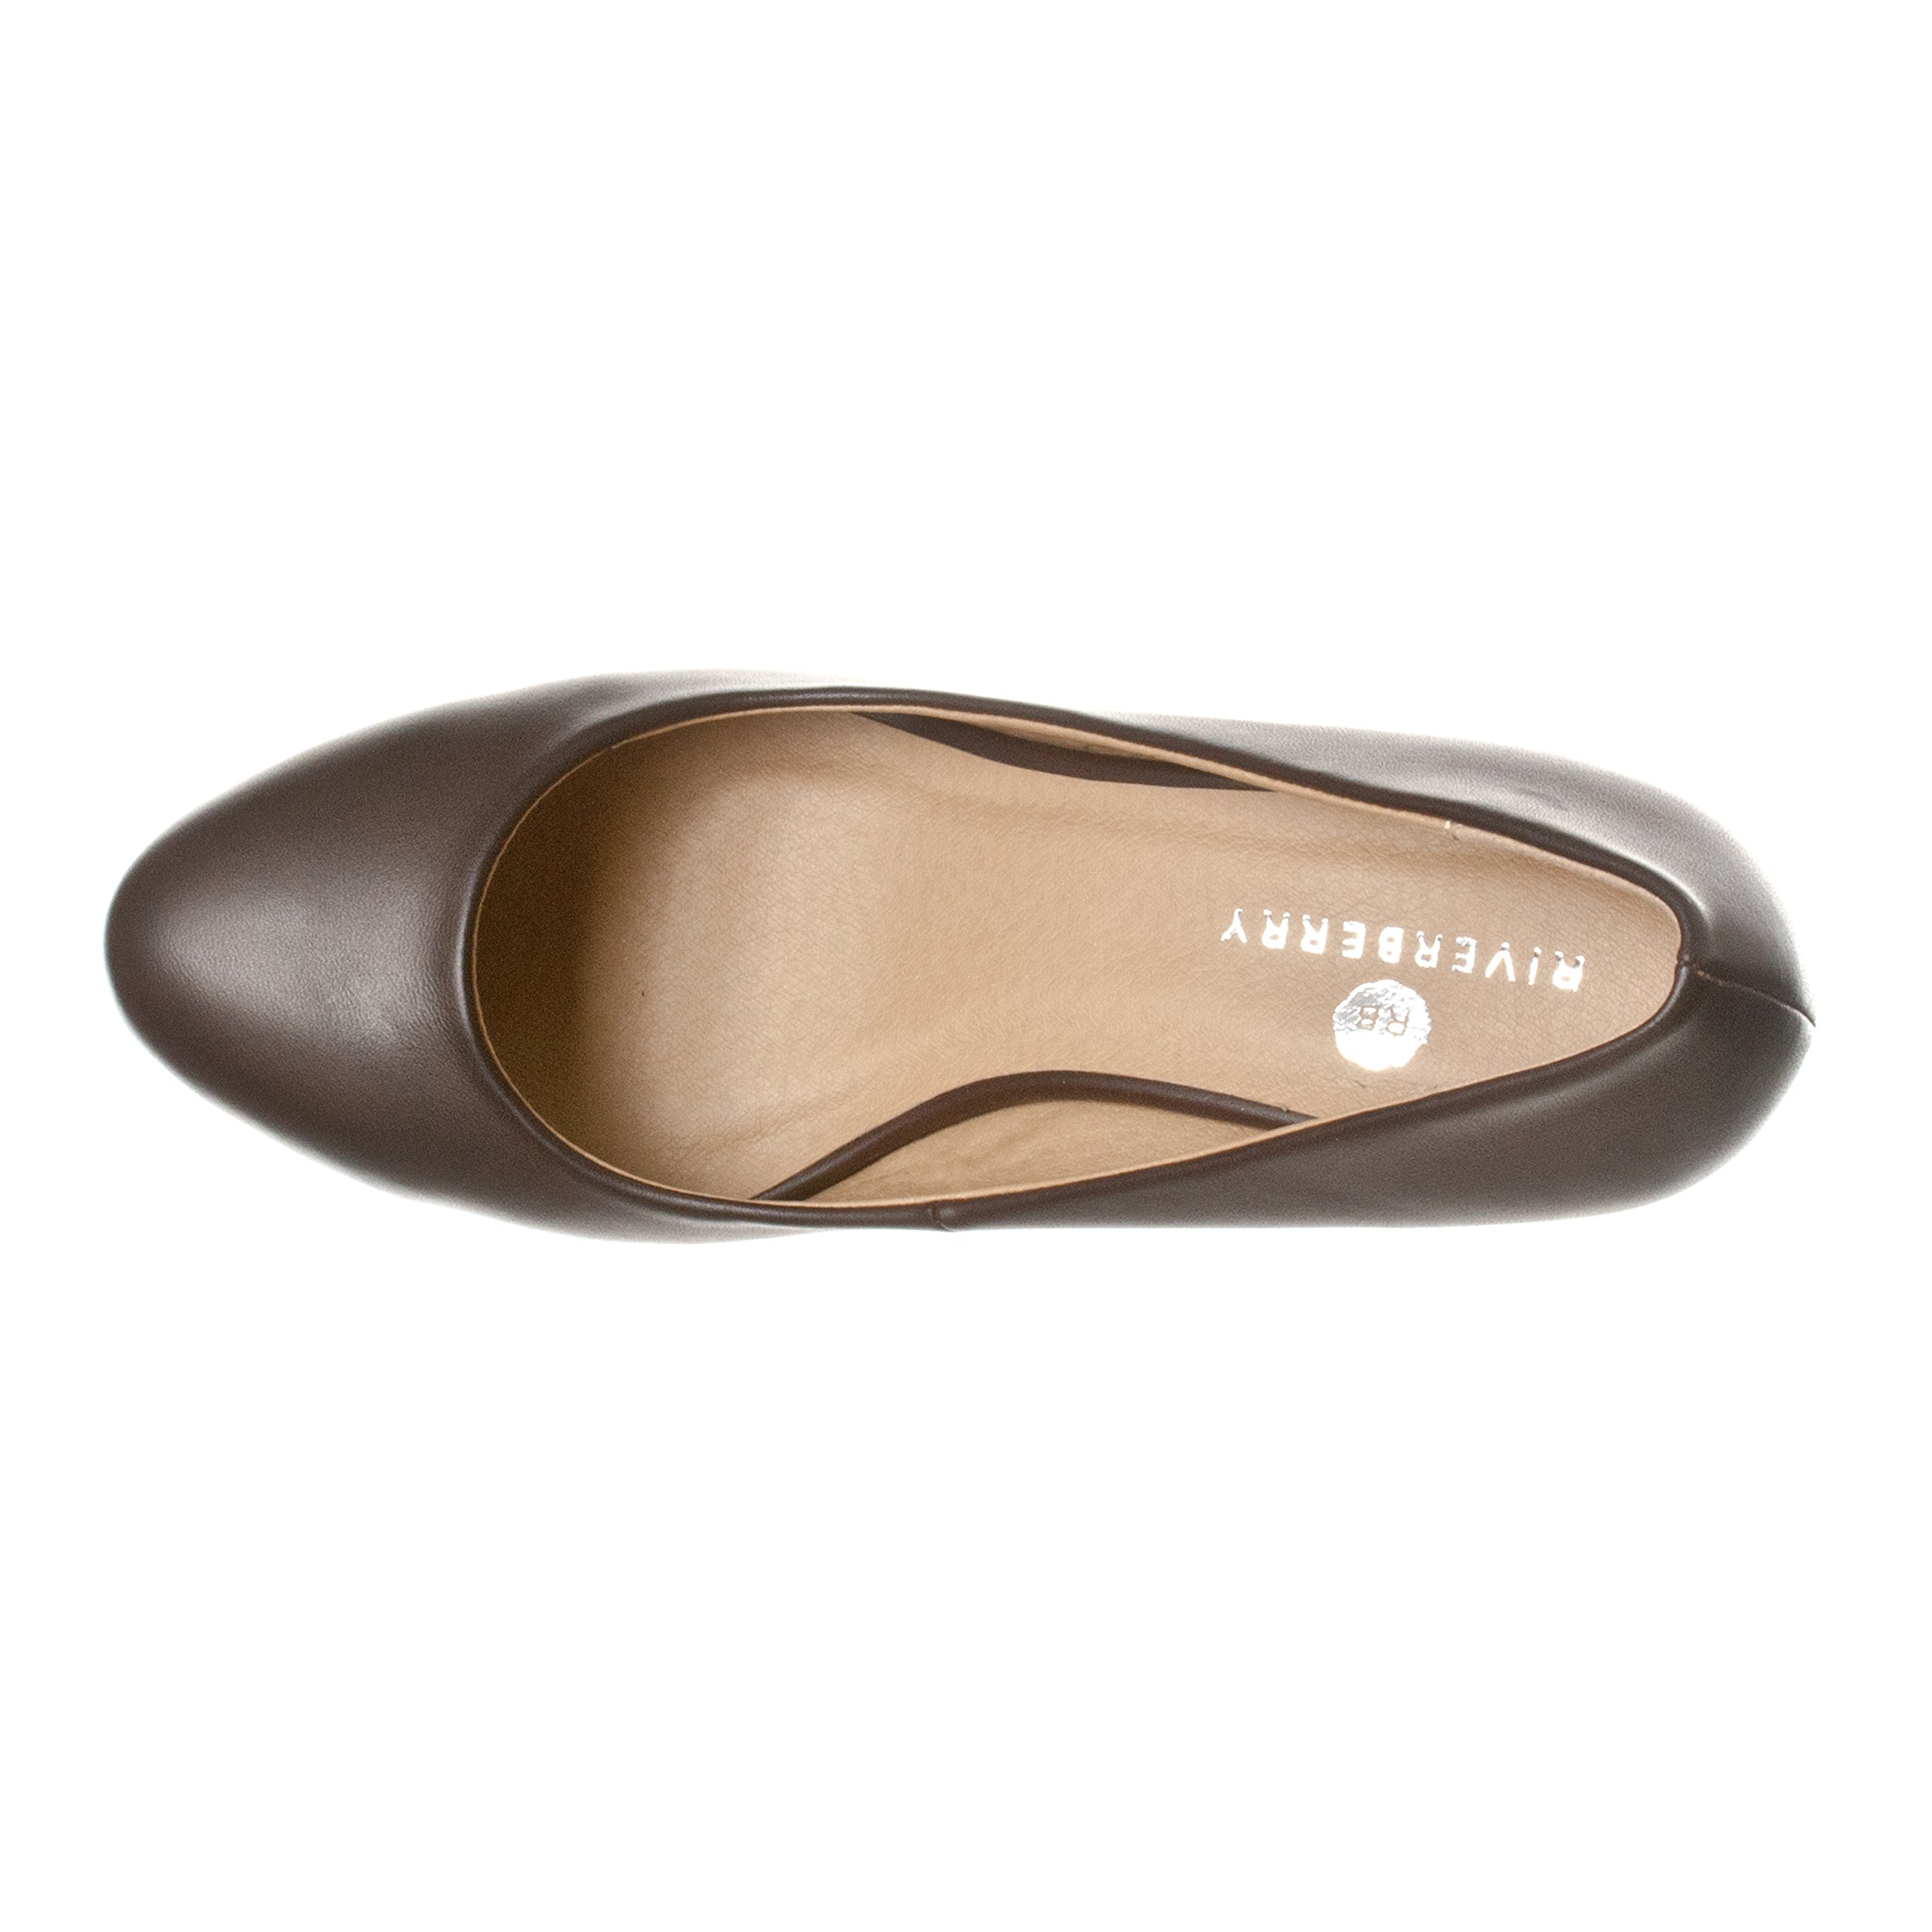 Riverberry Women's Leah Mid Heel Round Toe Wedge Pumps, Coffee PU, 9 by Riverberry (Image #3)